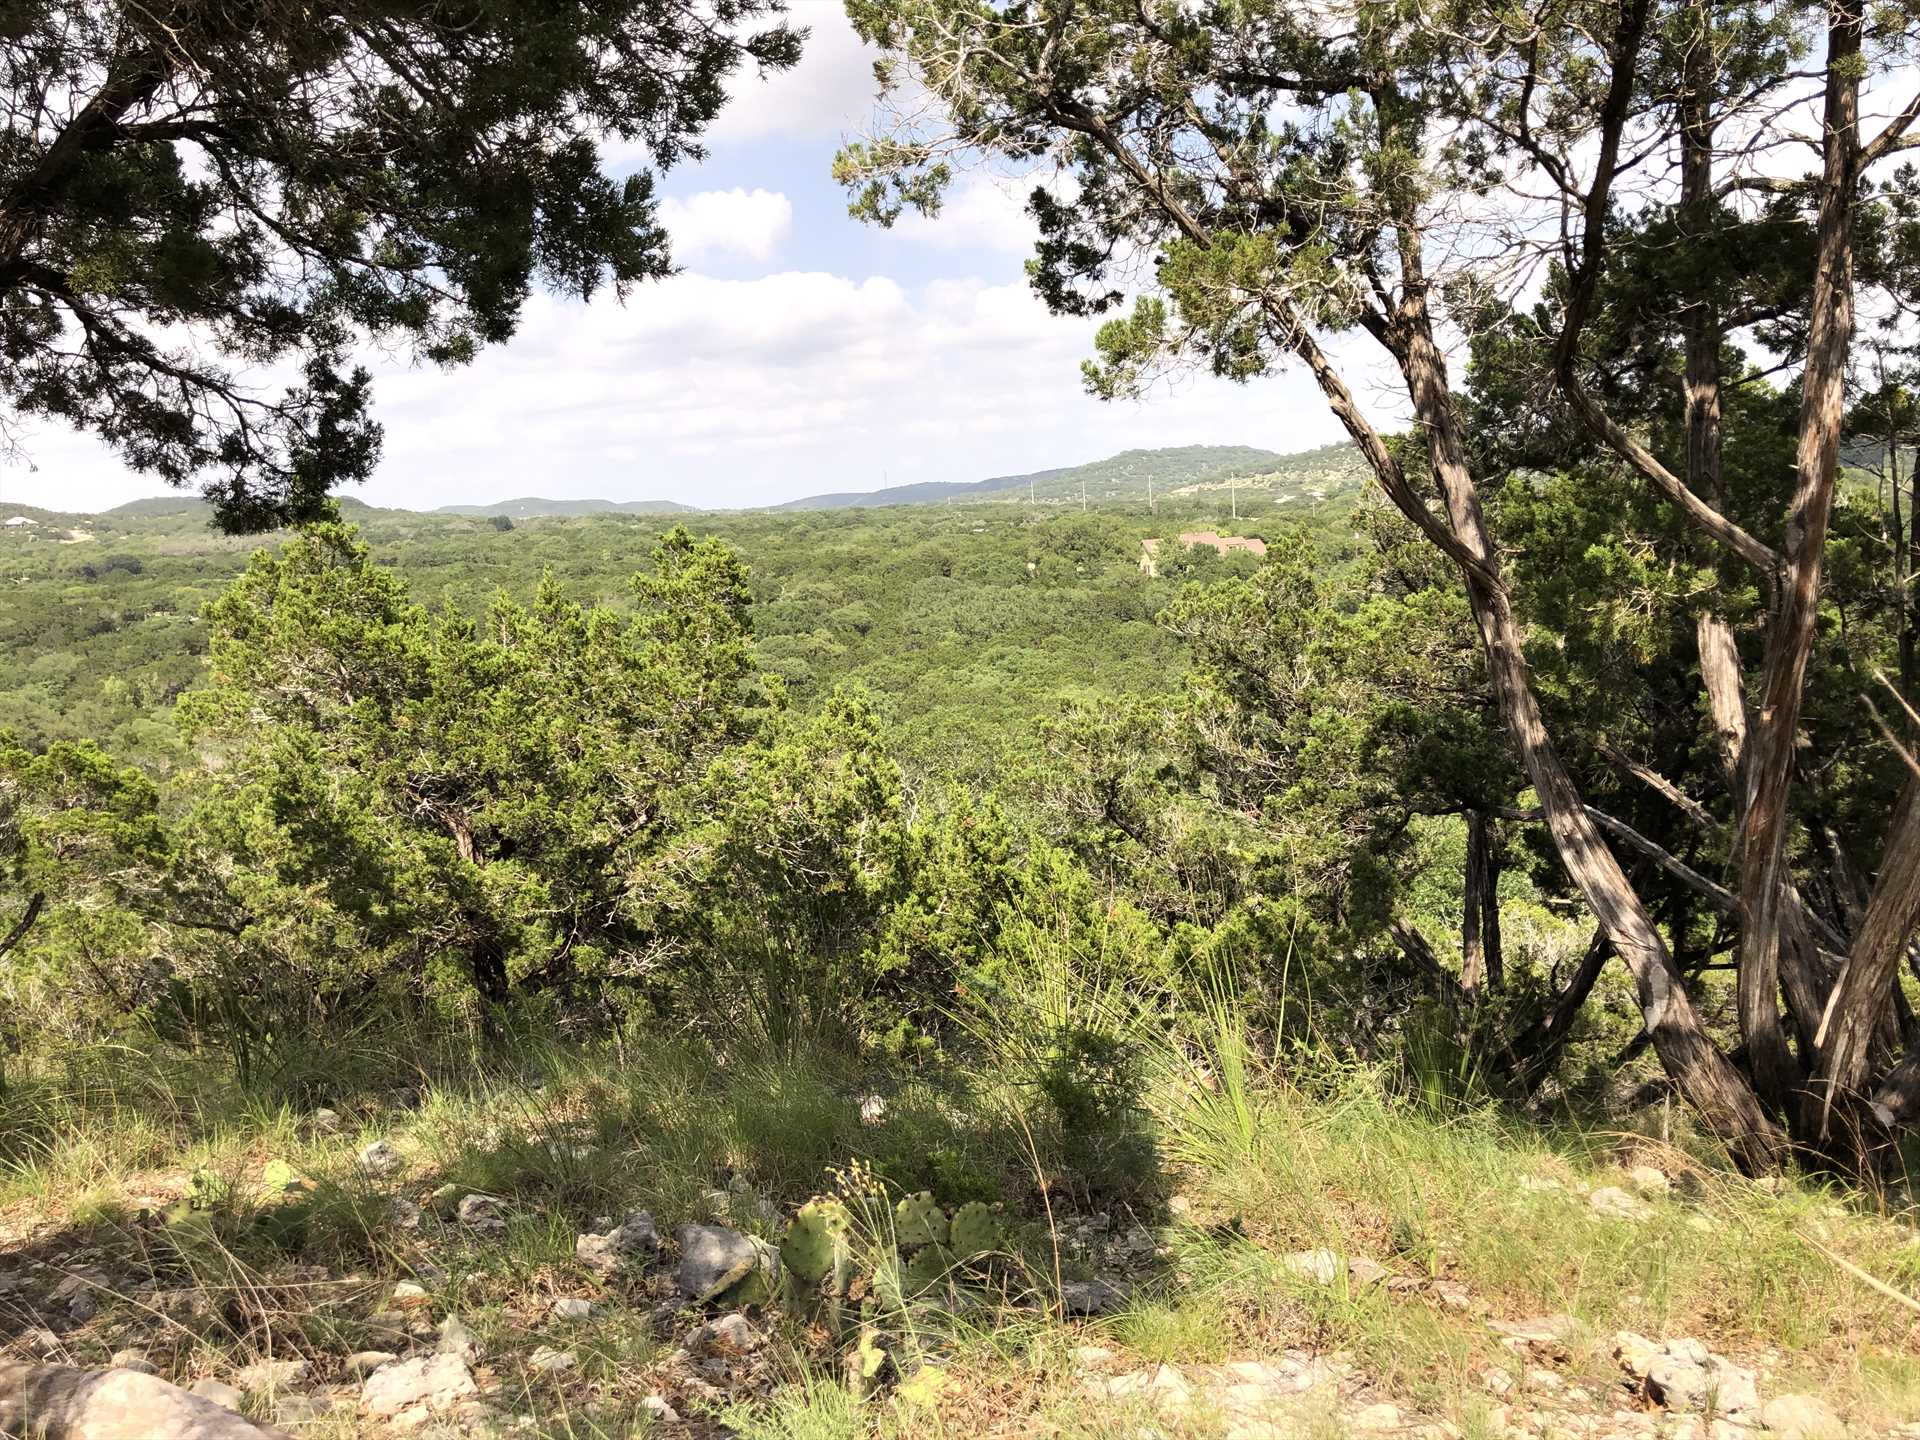 Kick back and admire the wildlife, sunsets, glittering night skies, and Hill Country views that seem to go on forever!